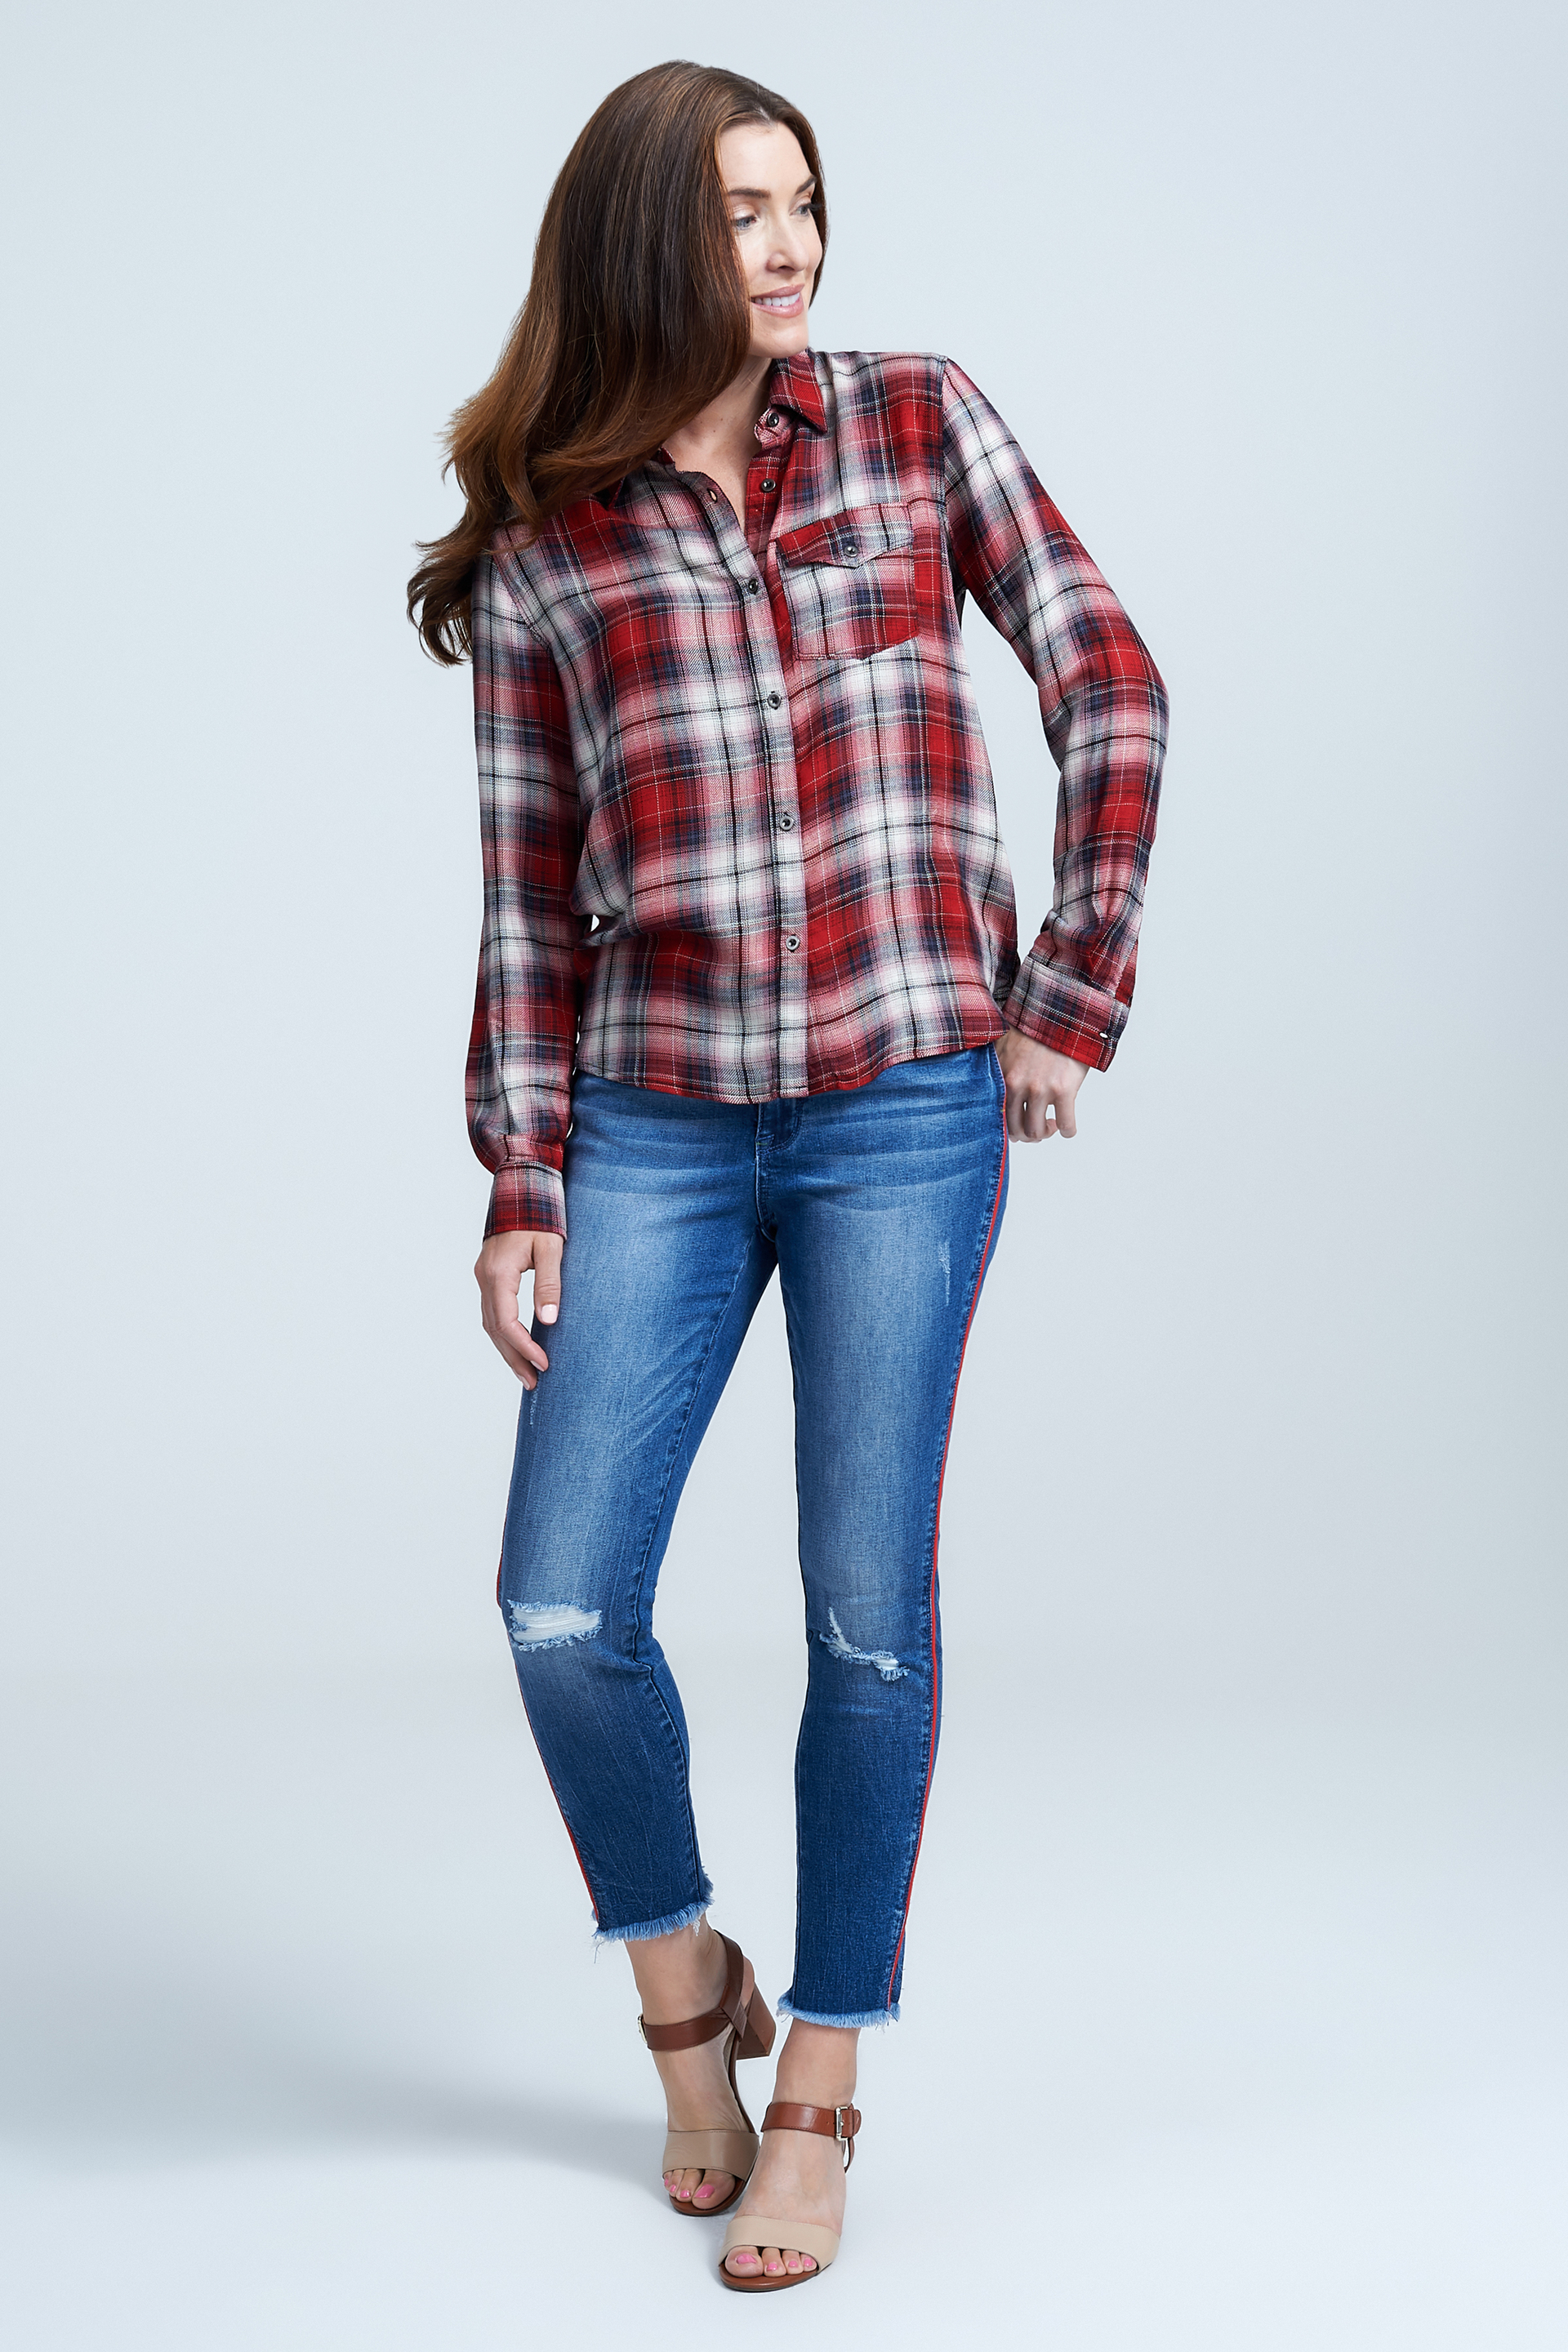 Seven7 Jeans Perfect Plaid Shirt <p>Lightweight and effortless, this plaid button-up shirt is a true classic that will never go out of style. It's detailed with a pocket at the chest and drops lower at the back hem for a supremely flattering shape.</p>